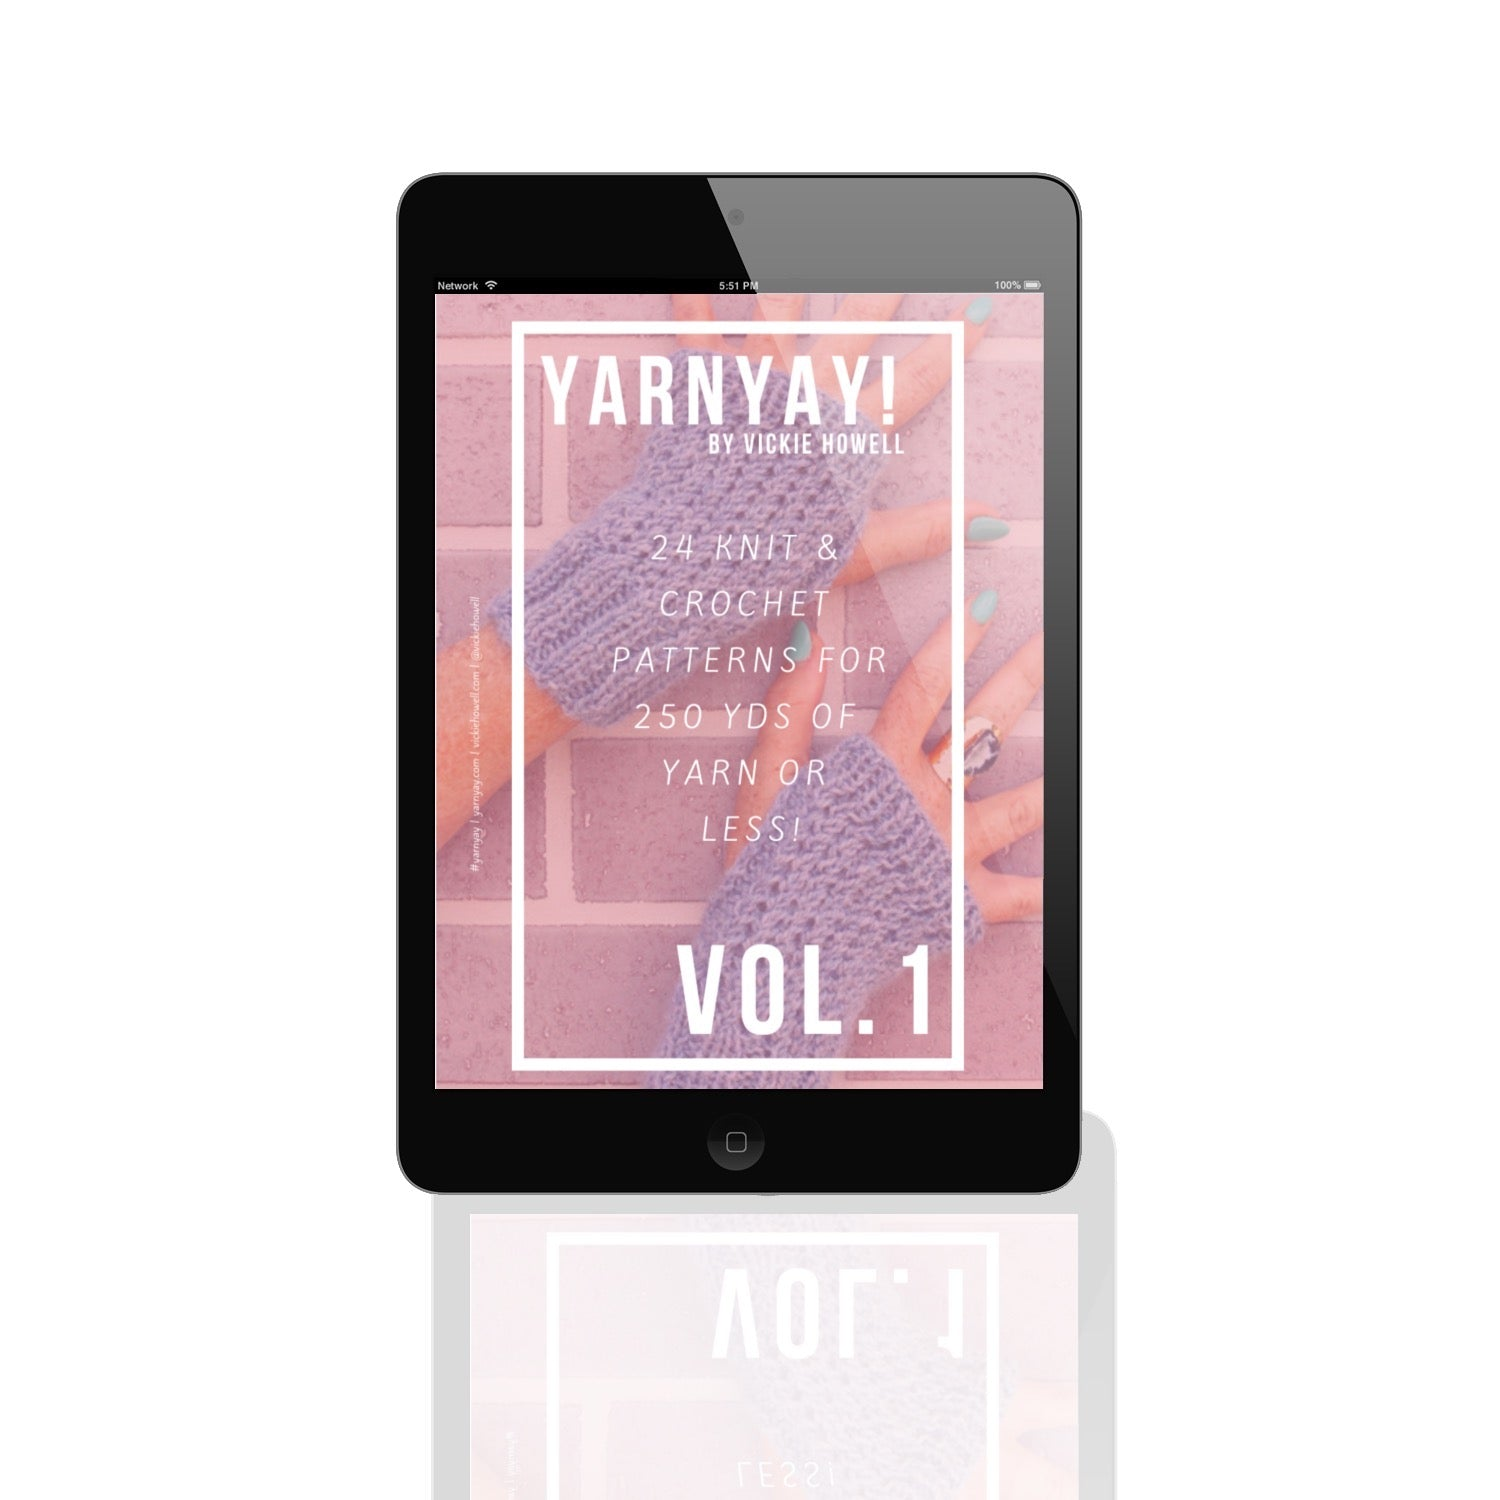 YarnYAY! Vol. 1 eBook